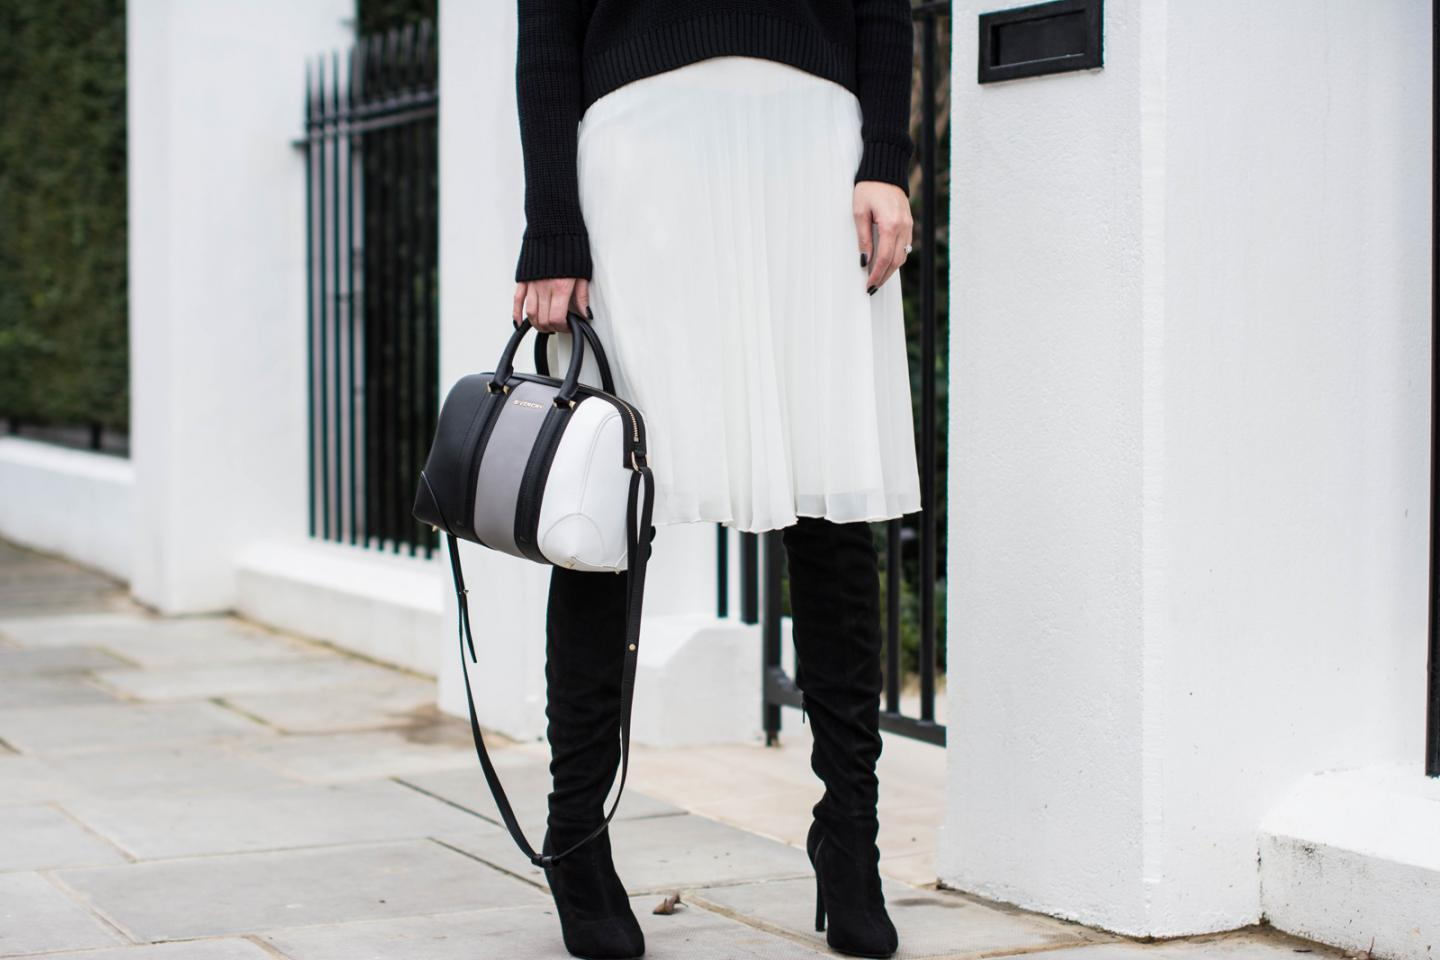 EJSTYLE - Black Topshop jumper, White pleated asos midi skirt, Givenchy lucrezia mini bag, Next OTK boots, monochrome OOTD, detail shot